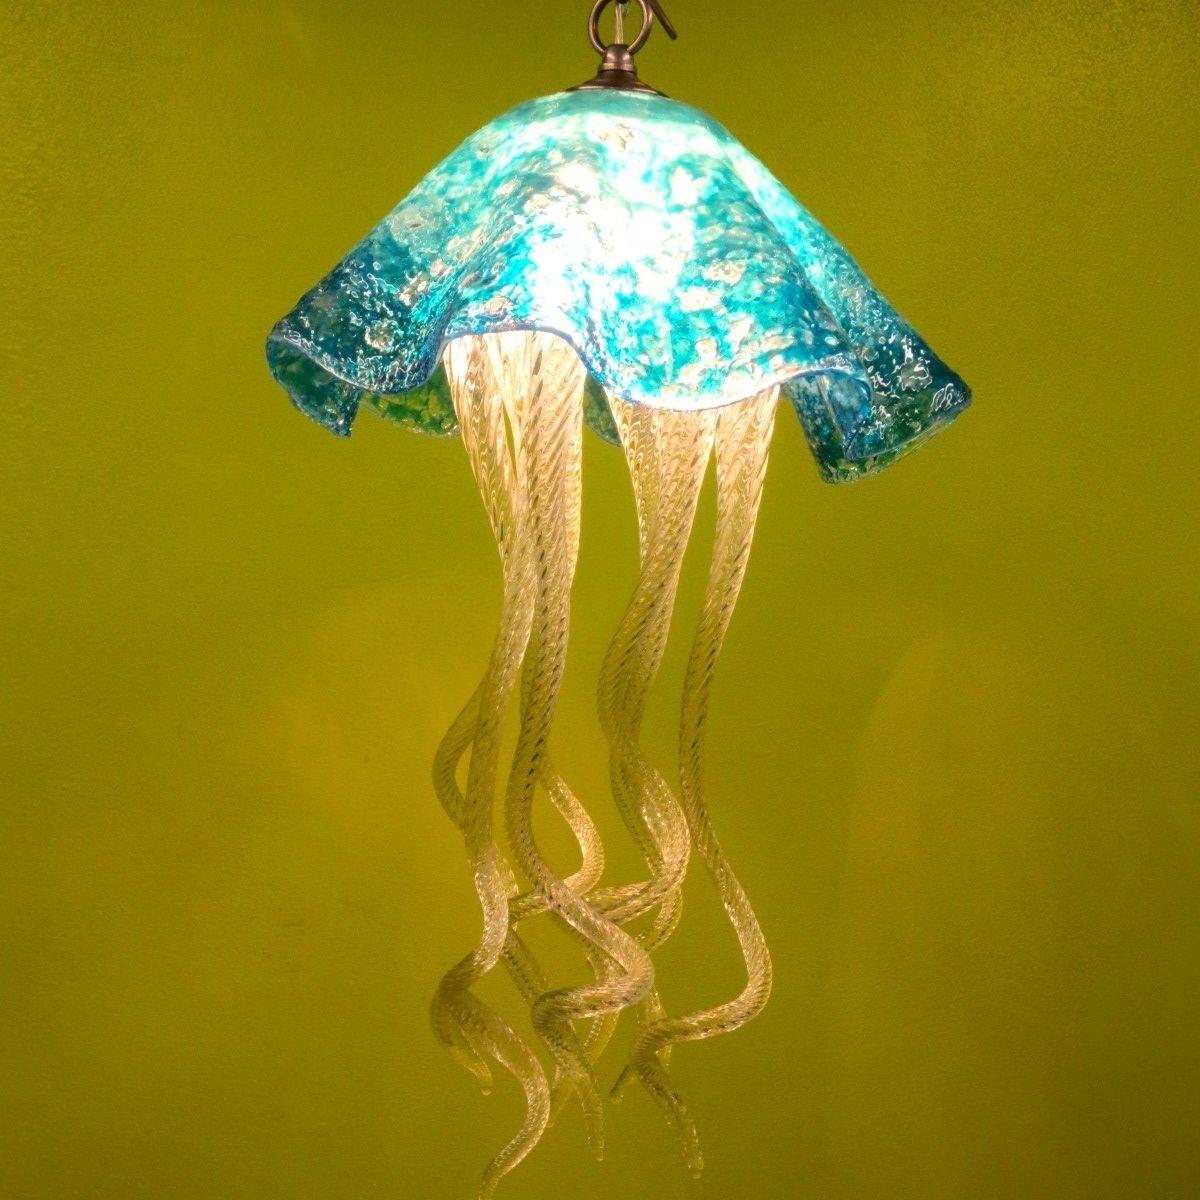 Buy A Hand Made Jellyfish Pendant Light – Turquoise Jellyfish Pertaining To Favorite Turquoise Crystal Chandelier Lights (View 3 of 20)